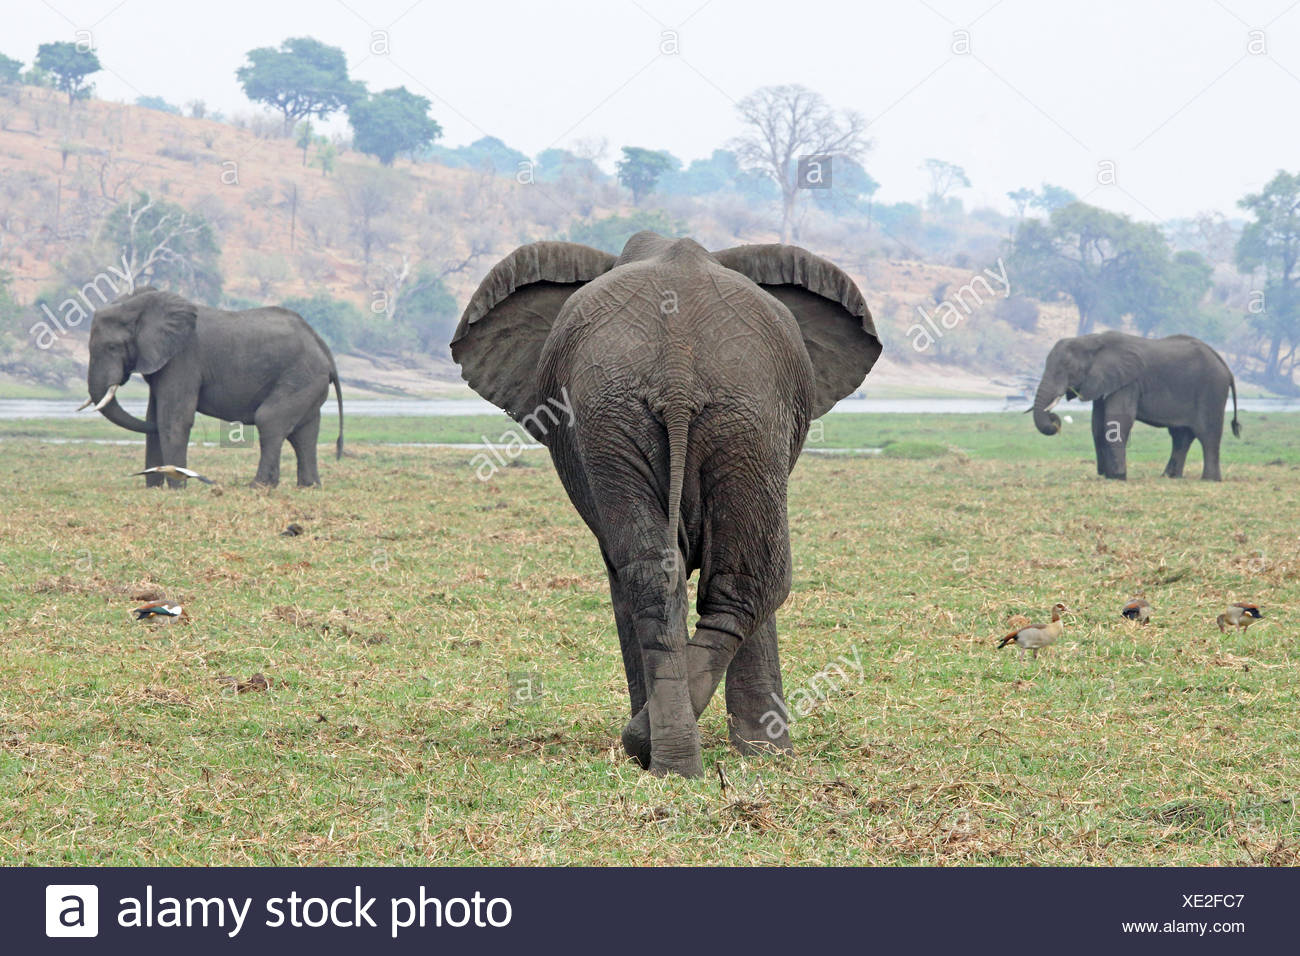 Elephant from behind Stock Photo